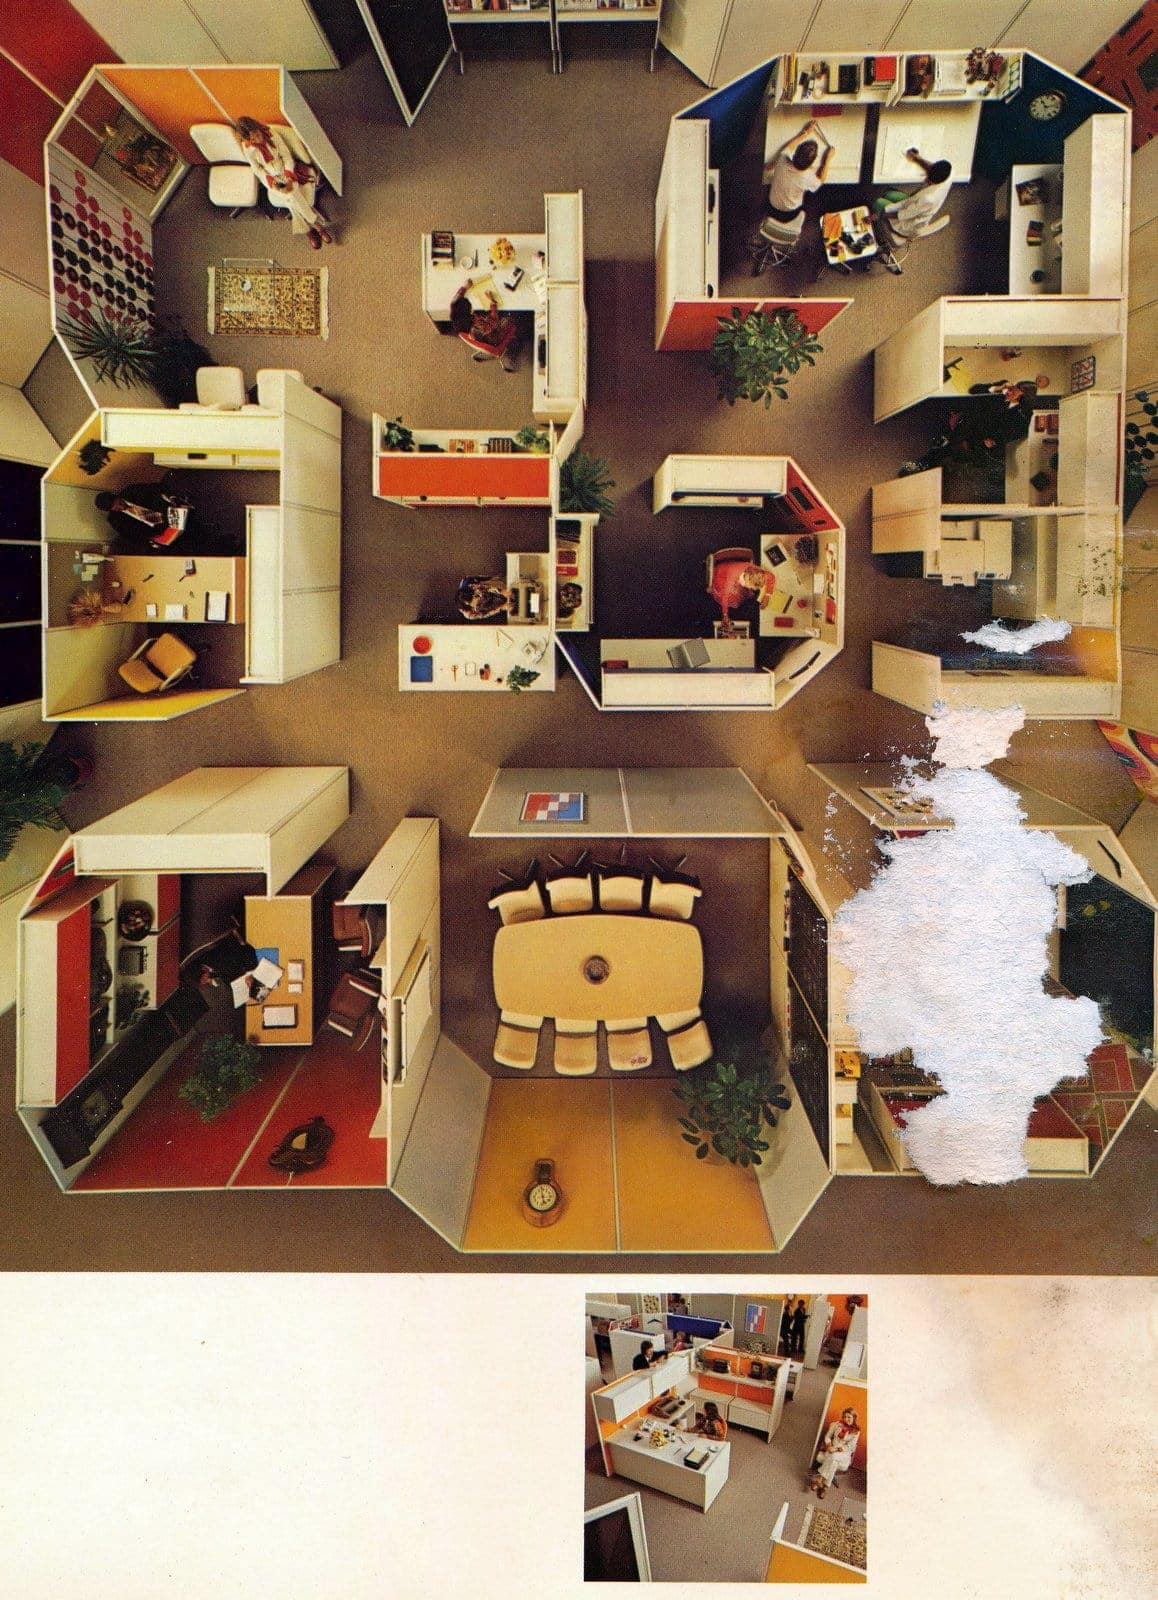 Old-fashioned office floorplans from the '70s